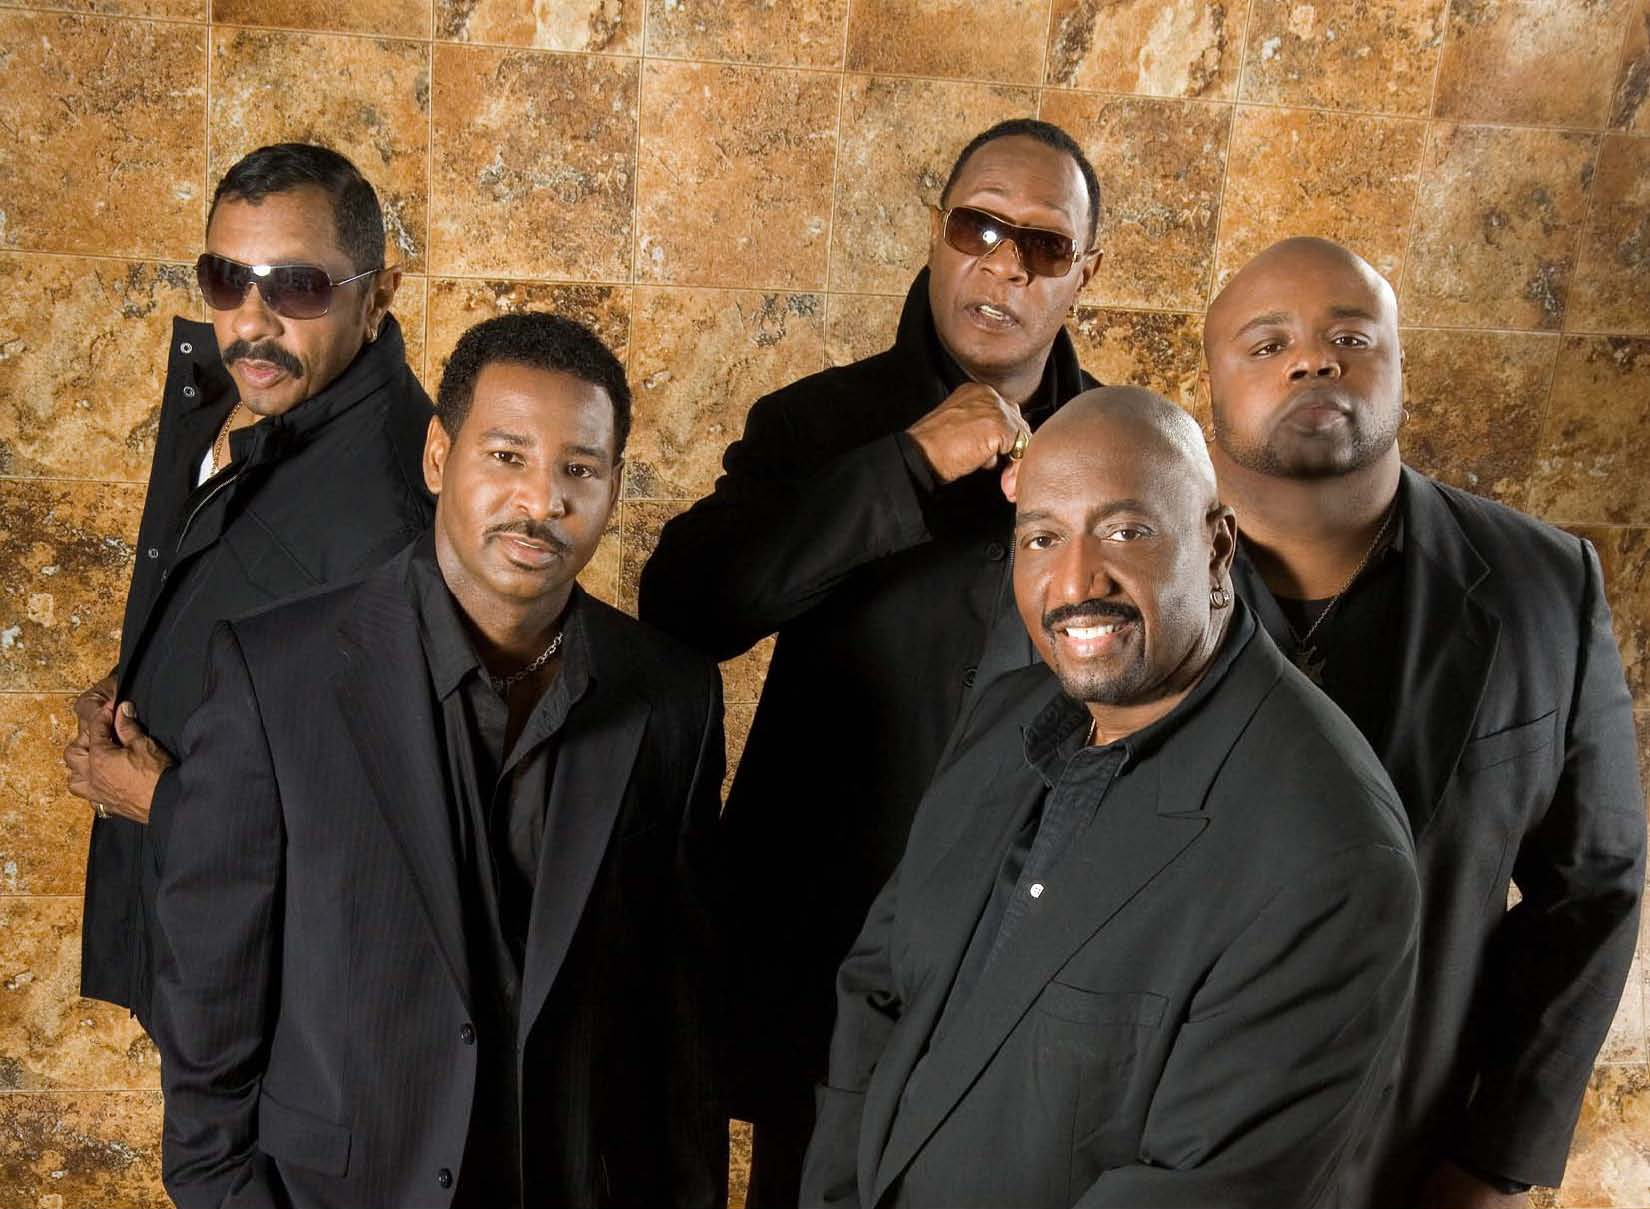 The Temptations will bring their nostalgic array of soul music to the Palladium on Feb. 27 for a live performance. (Submitted photo)